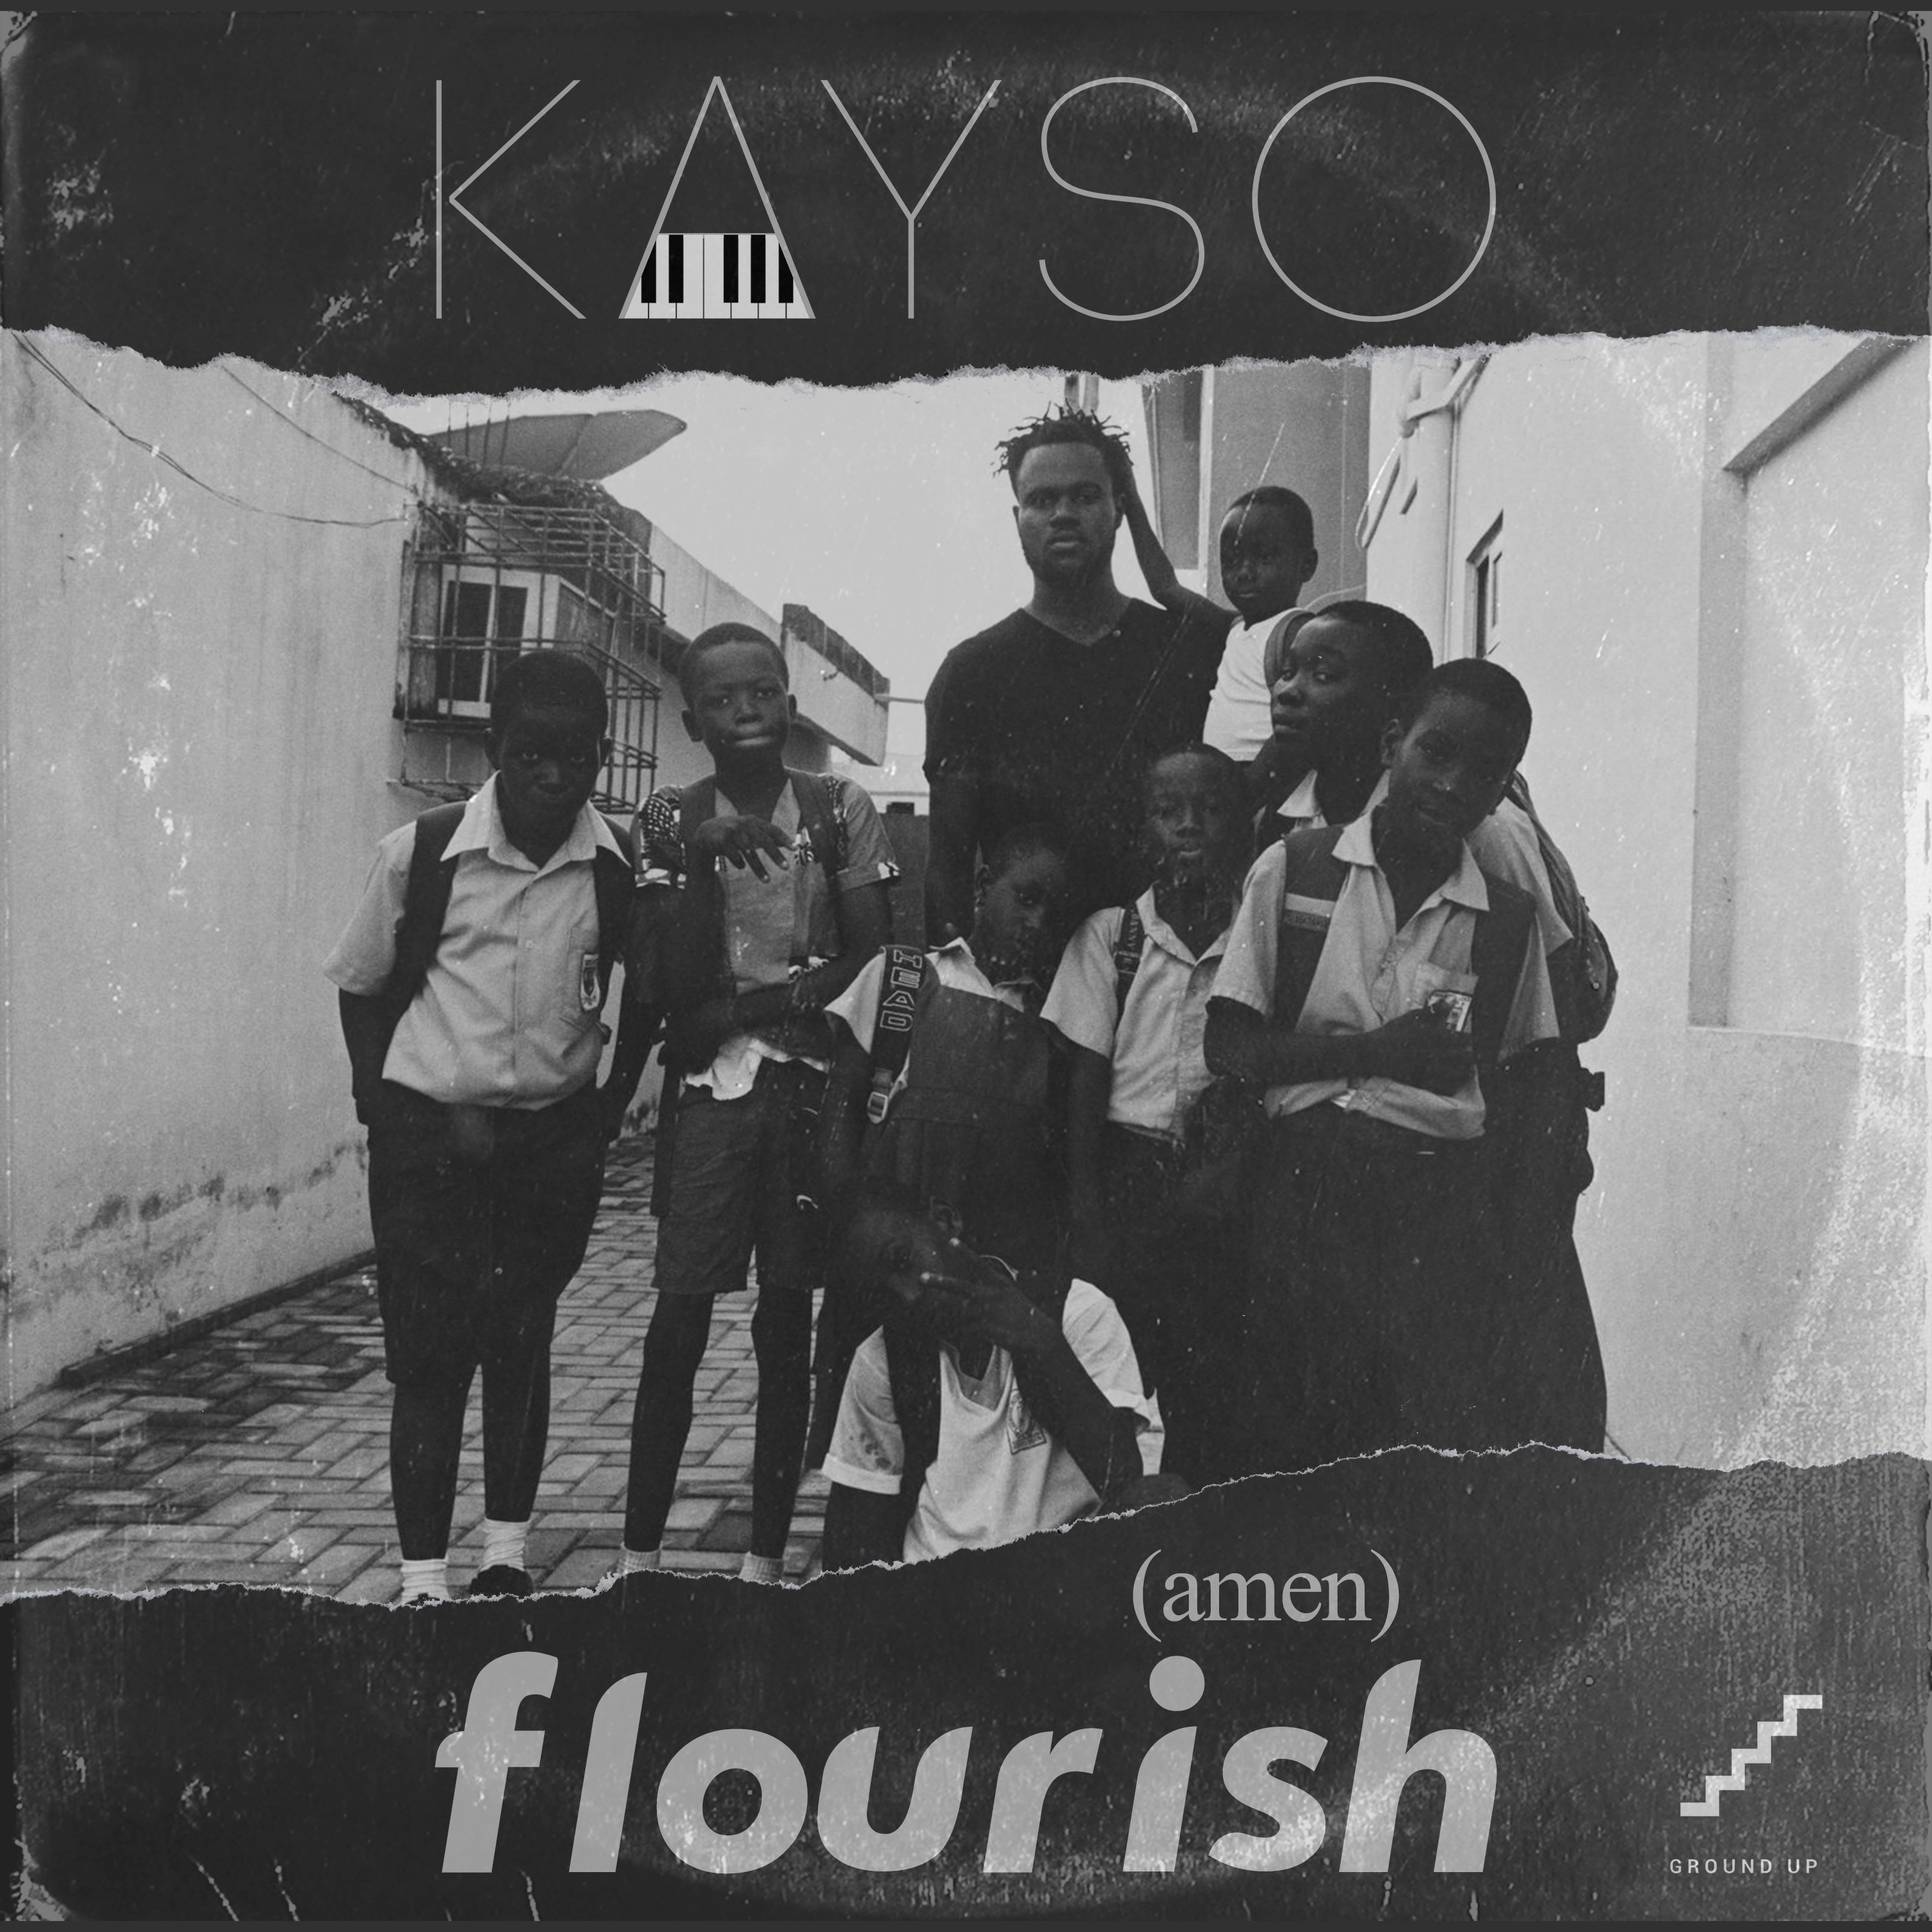 KaySo – Flourish (Amen) (Prod. KaySo & Guilty Beatz)